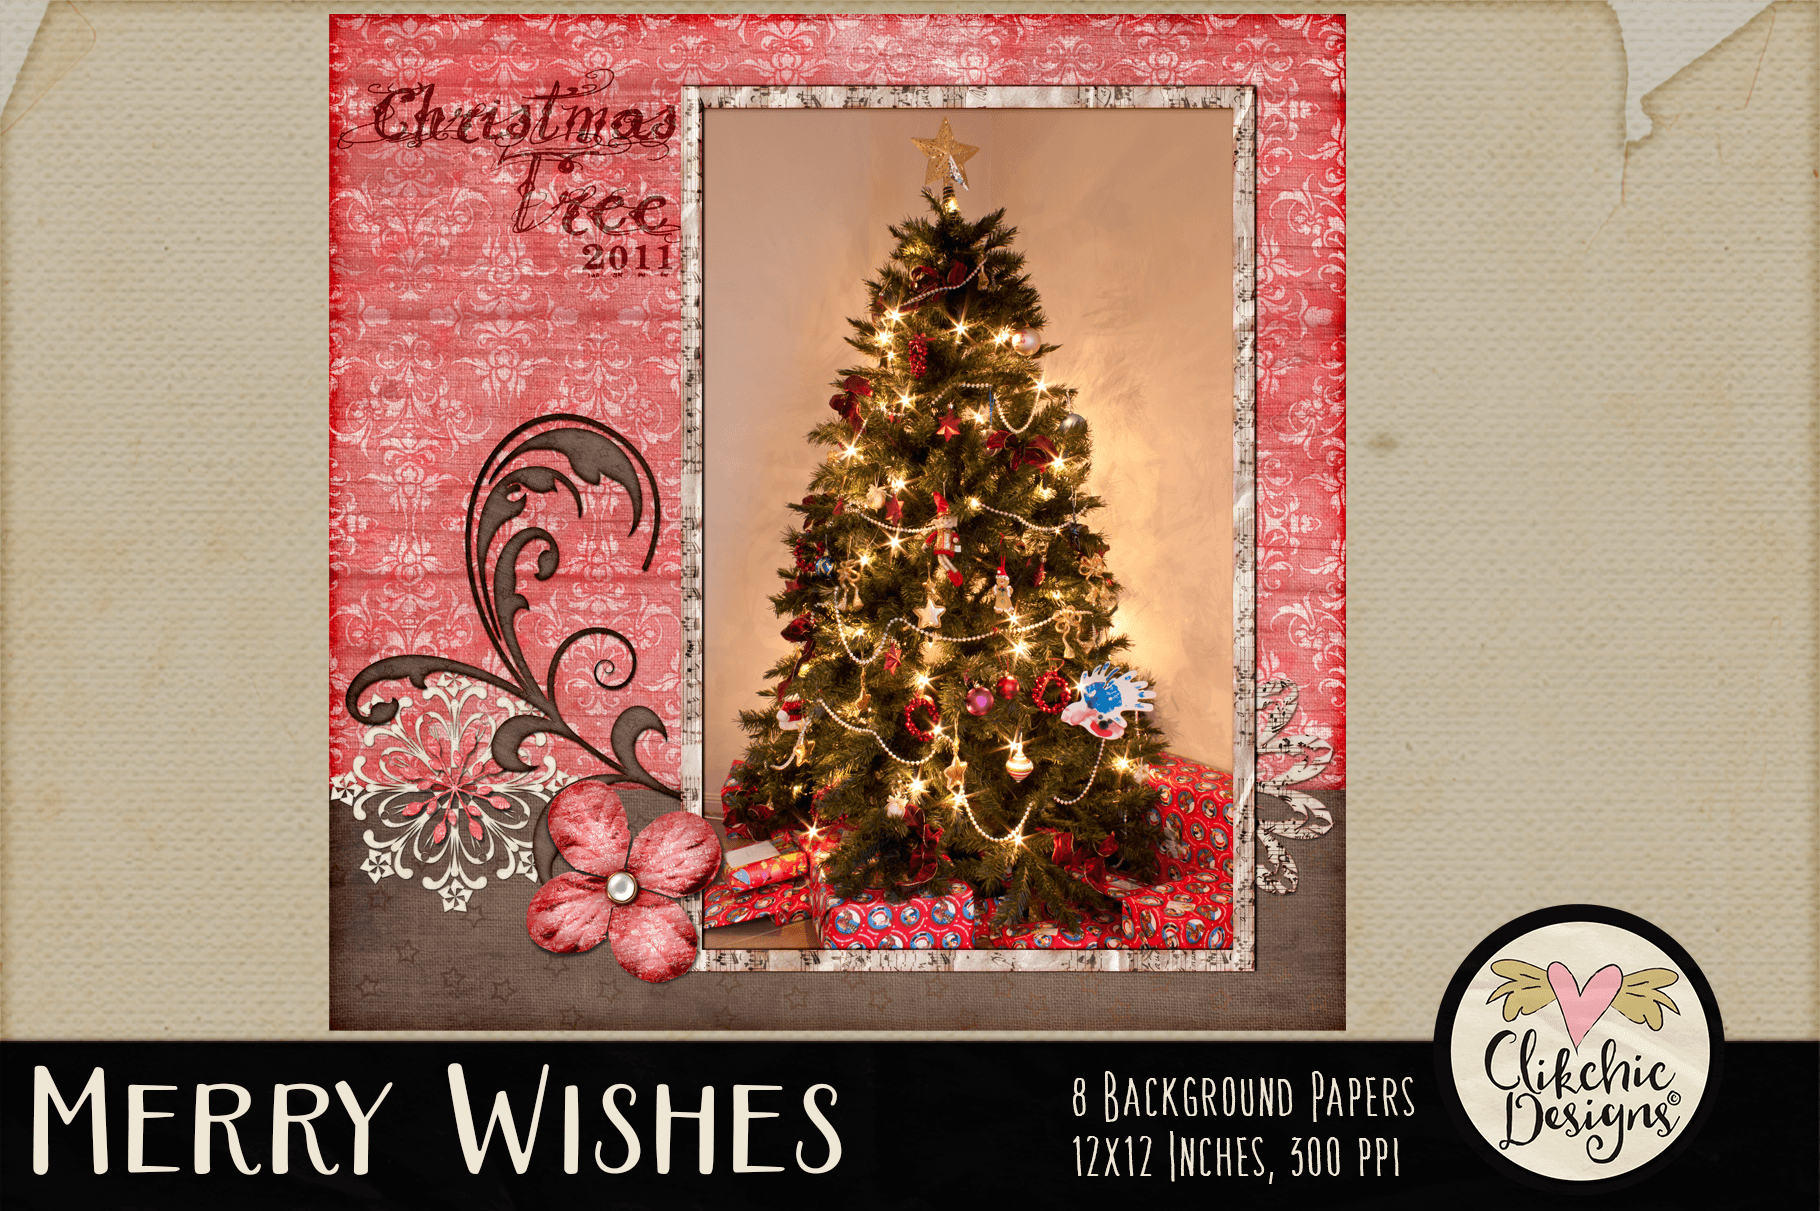 Christmas Backgrounds - Merry Wishes Digital Papers Textures example image 9